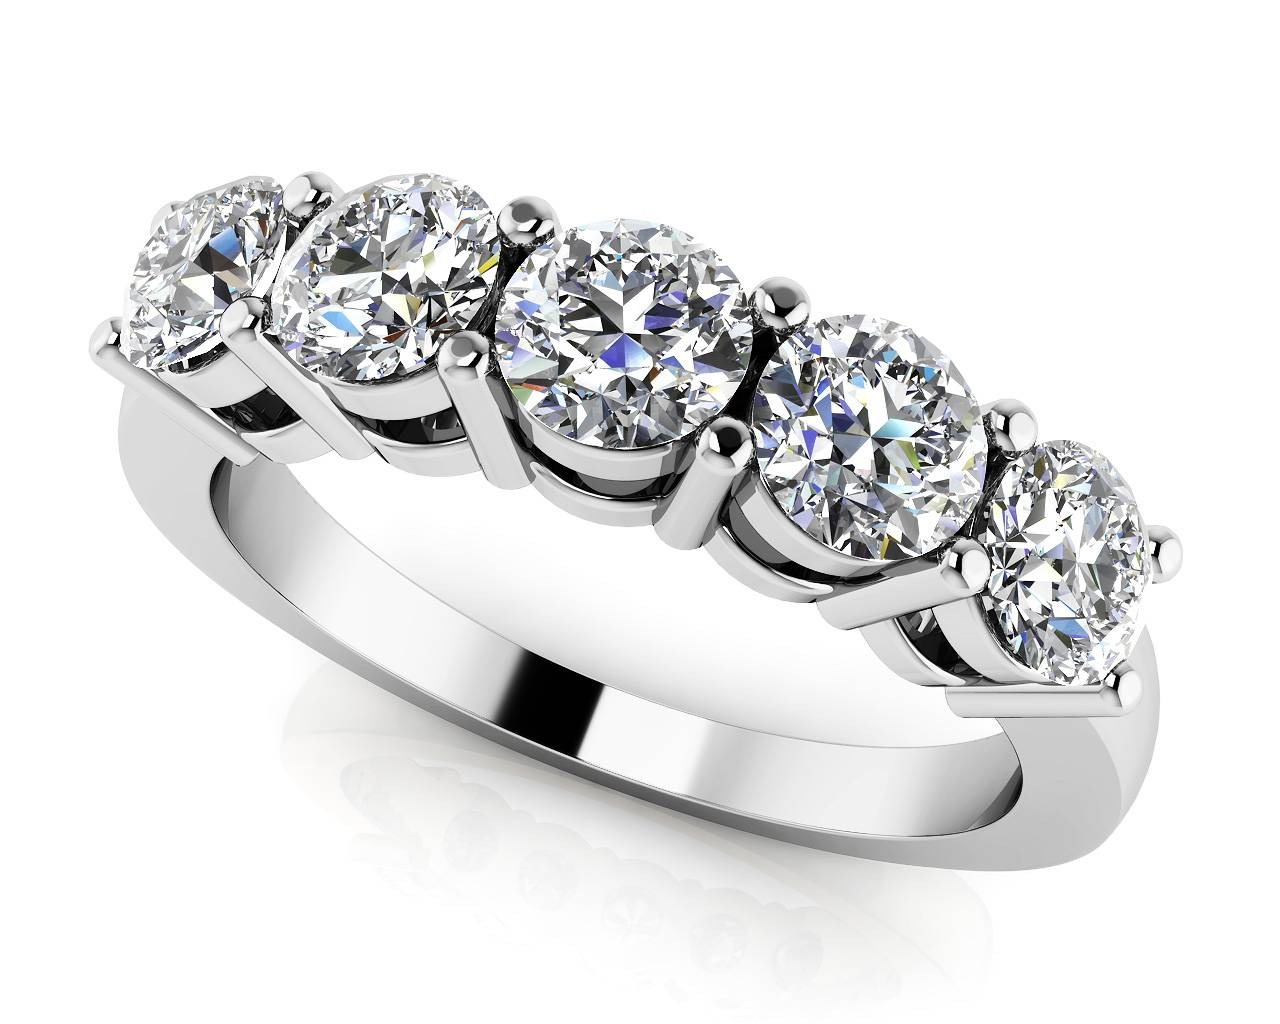 Design Your Own Diamond Anniversary Ring & Eternity Ring In Most Recent Unusual Anniversary Rings (Gallery 14 of 25)